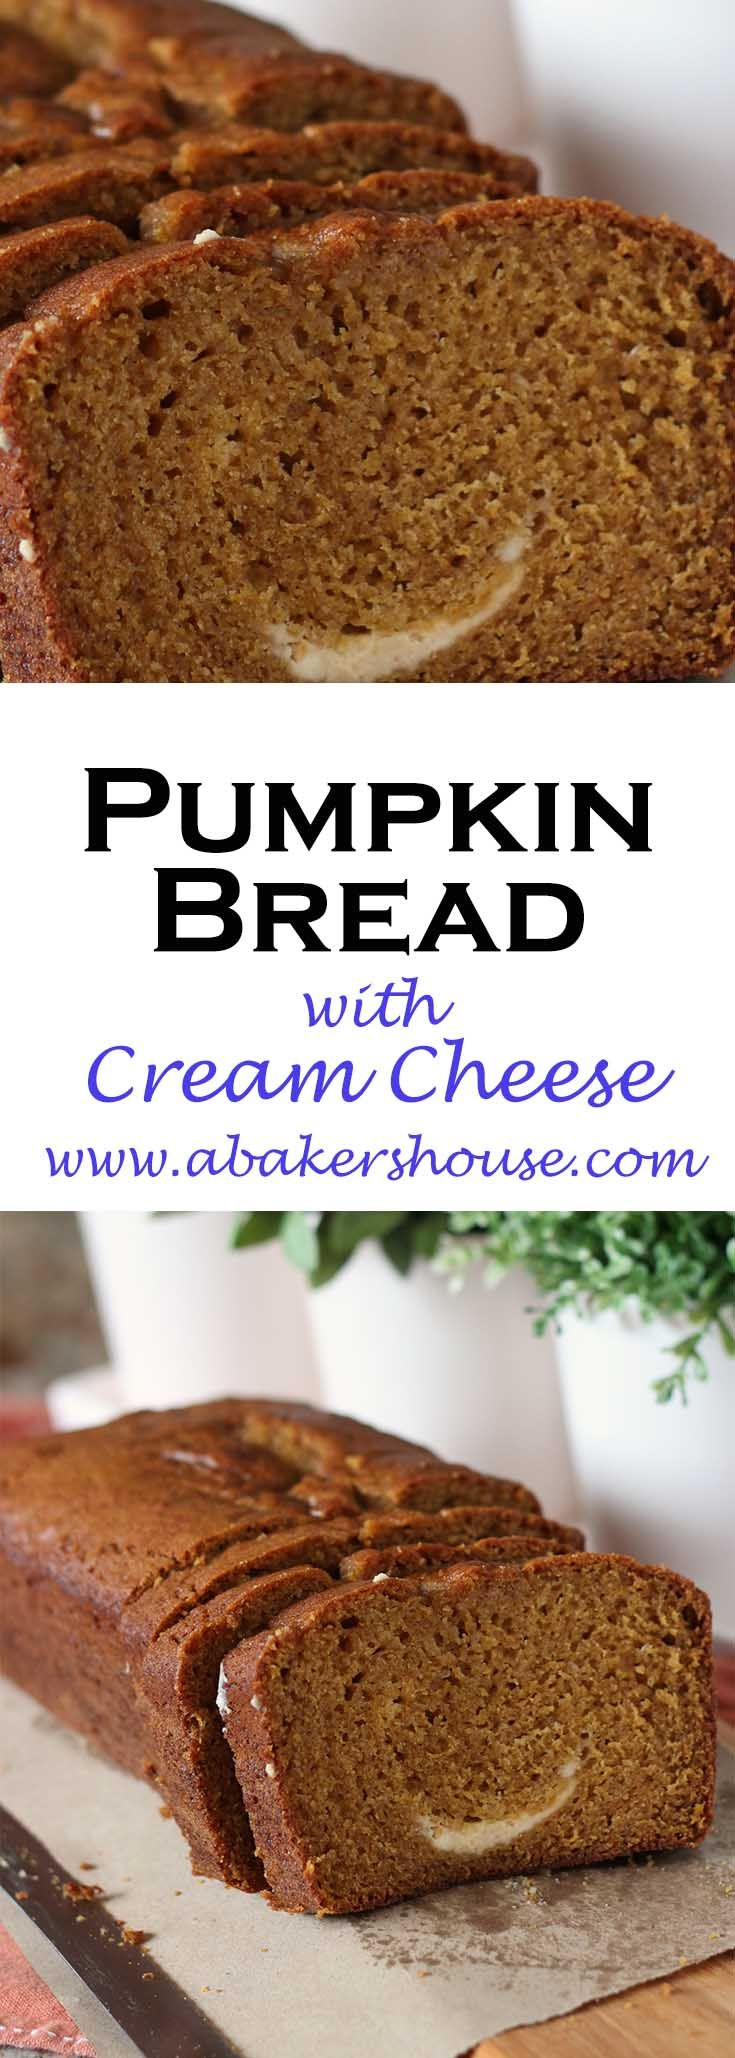 Pumpkin Bread with Cream Cheese Swirl is your go-to quick bread for autumn baking. Easy to pull together and even easier to eat, this pumpkin bread is a seasonal favorite.